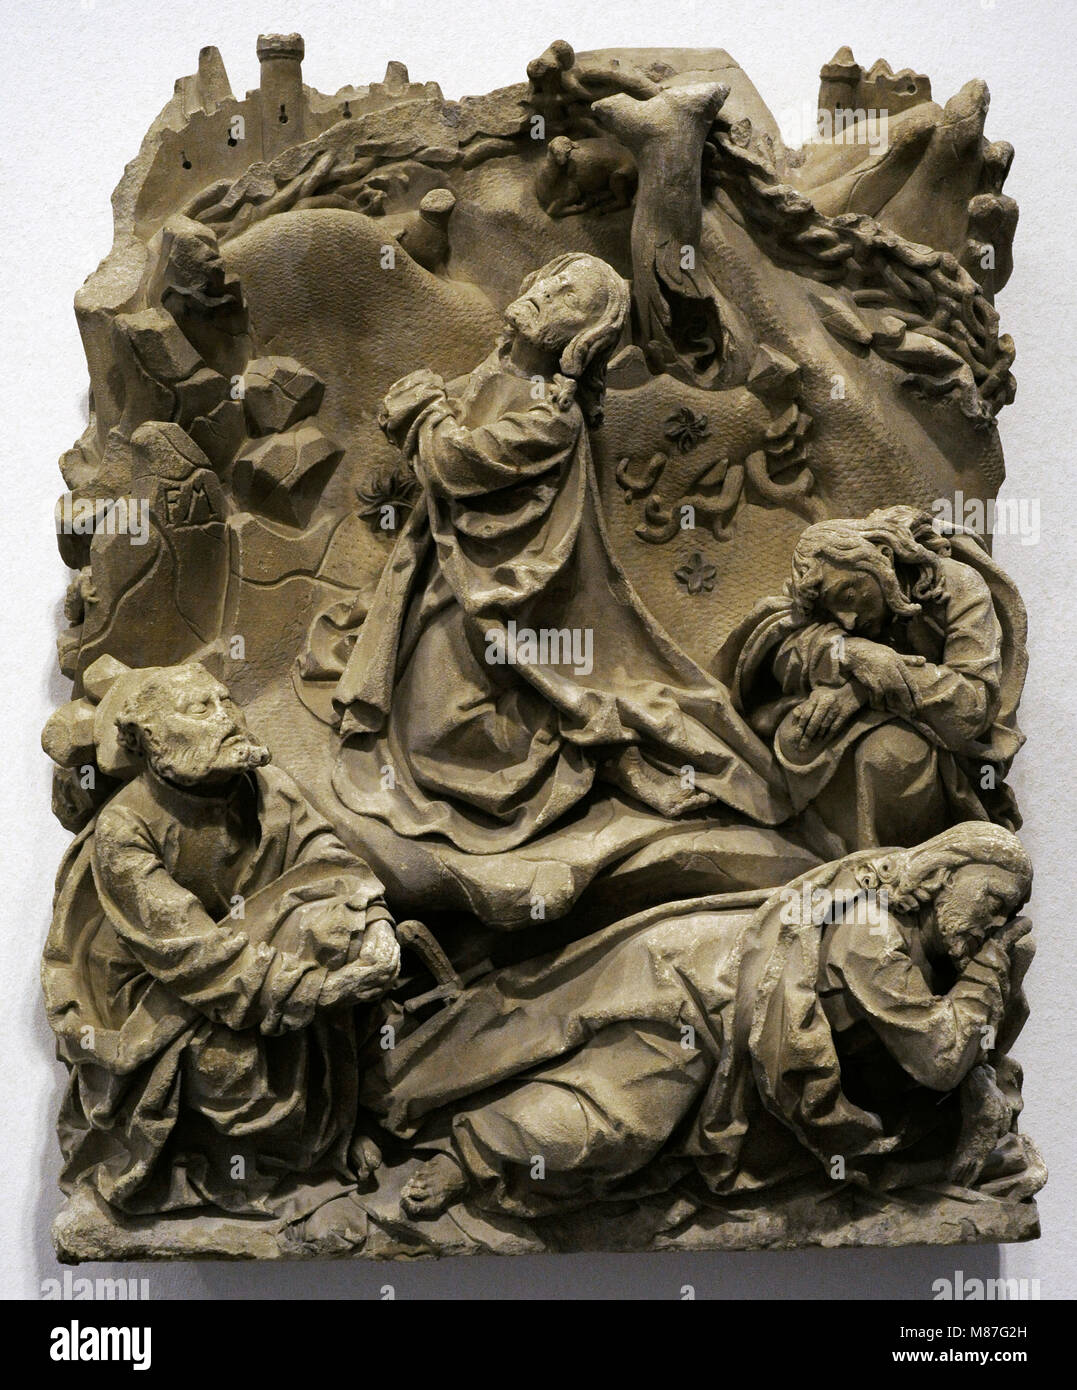 Jesu's prayer. Christ on the Mount of Olives, from the sacrament house of Cologne Cathedral, Germany. Sculptural - Stock Image